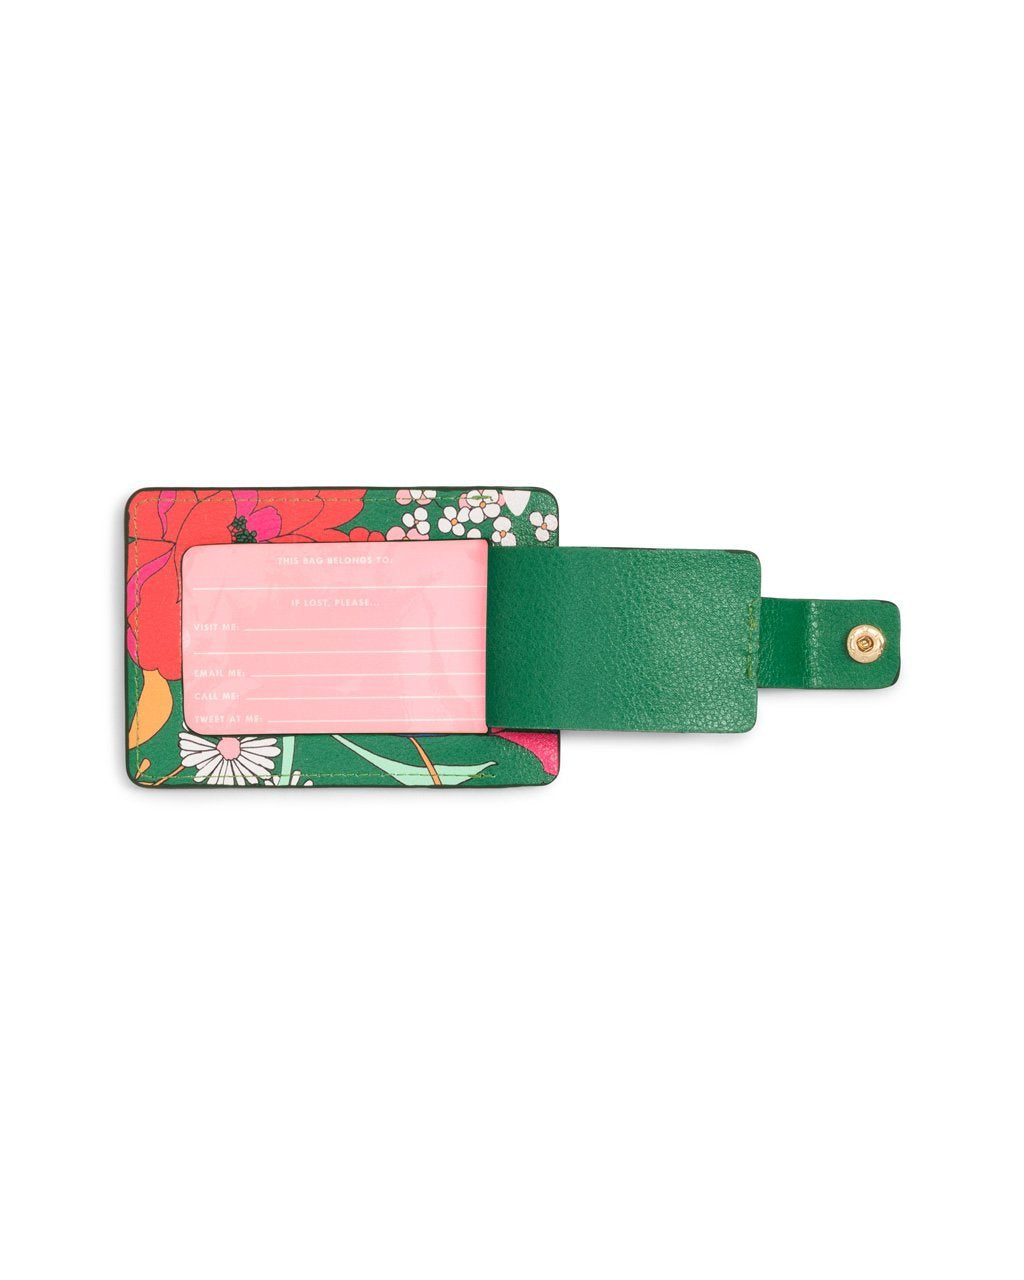 Pink insert included with luggage tag